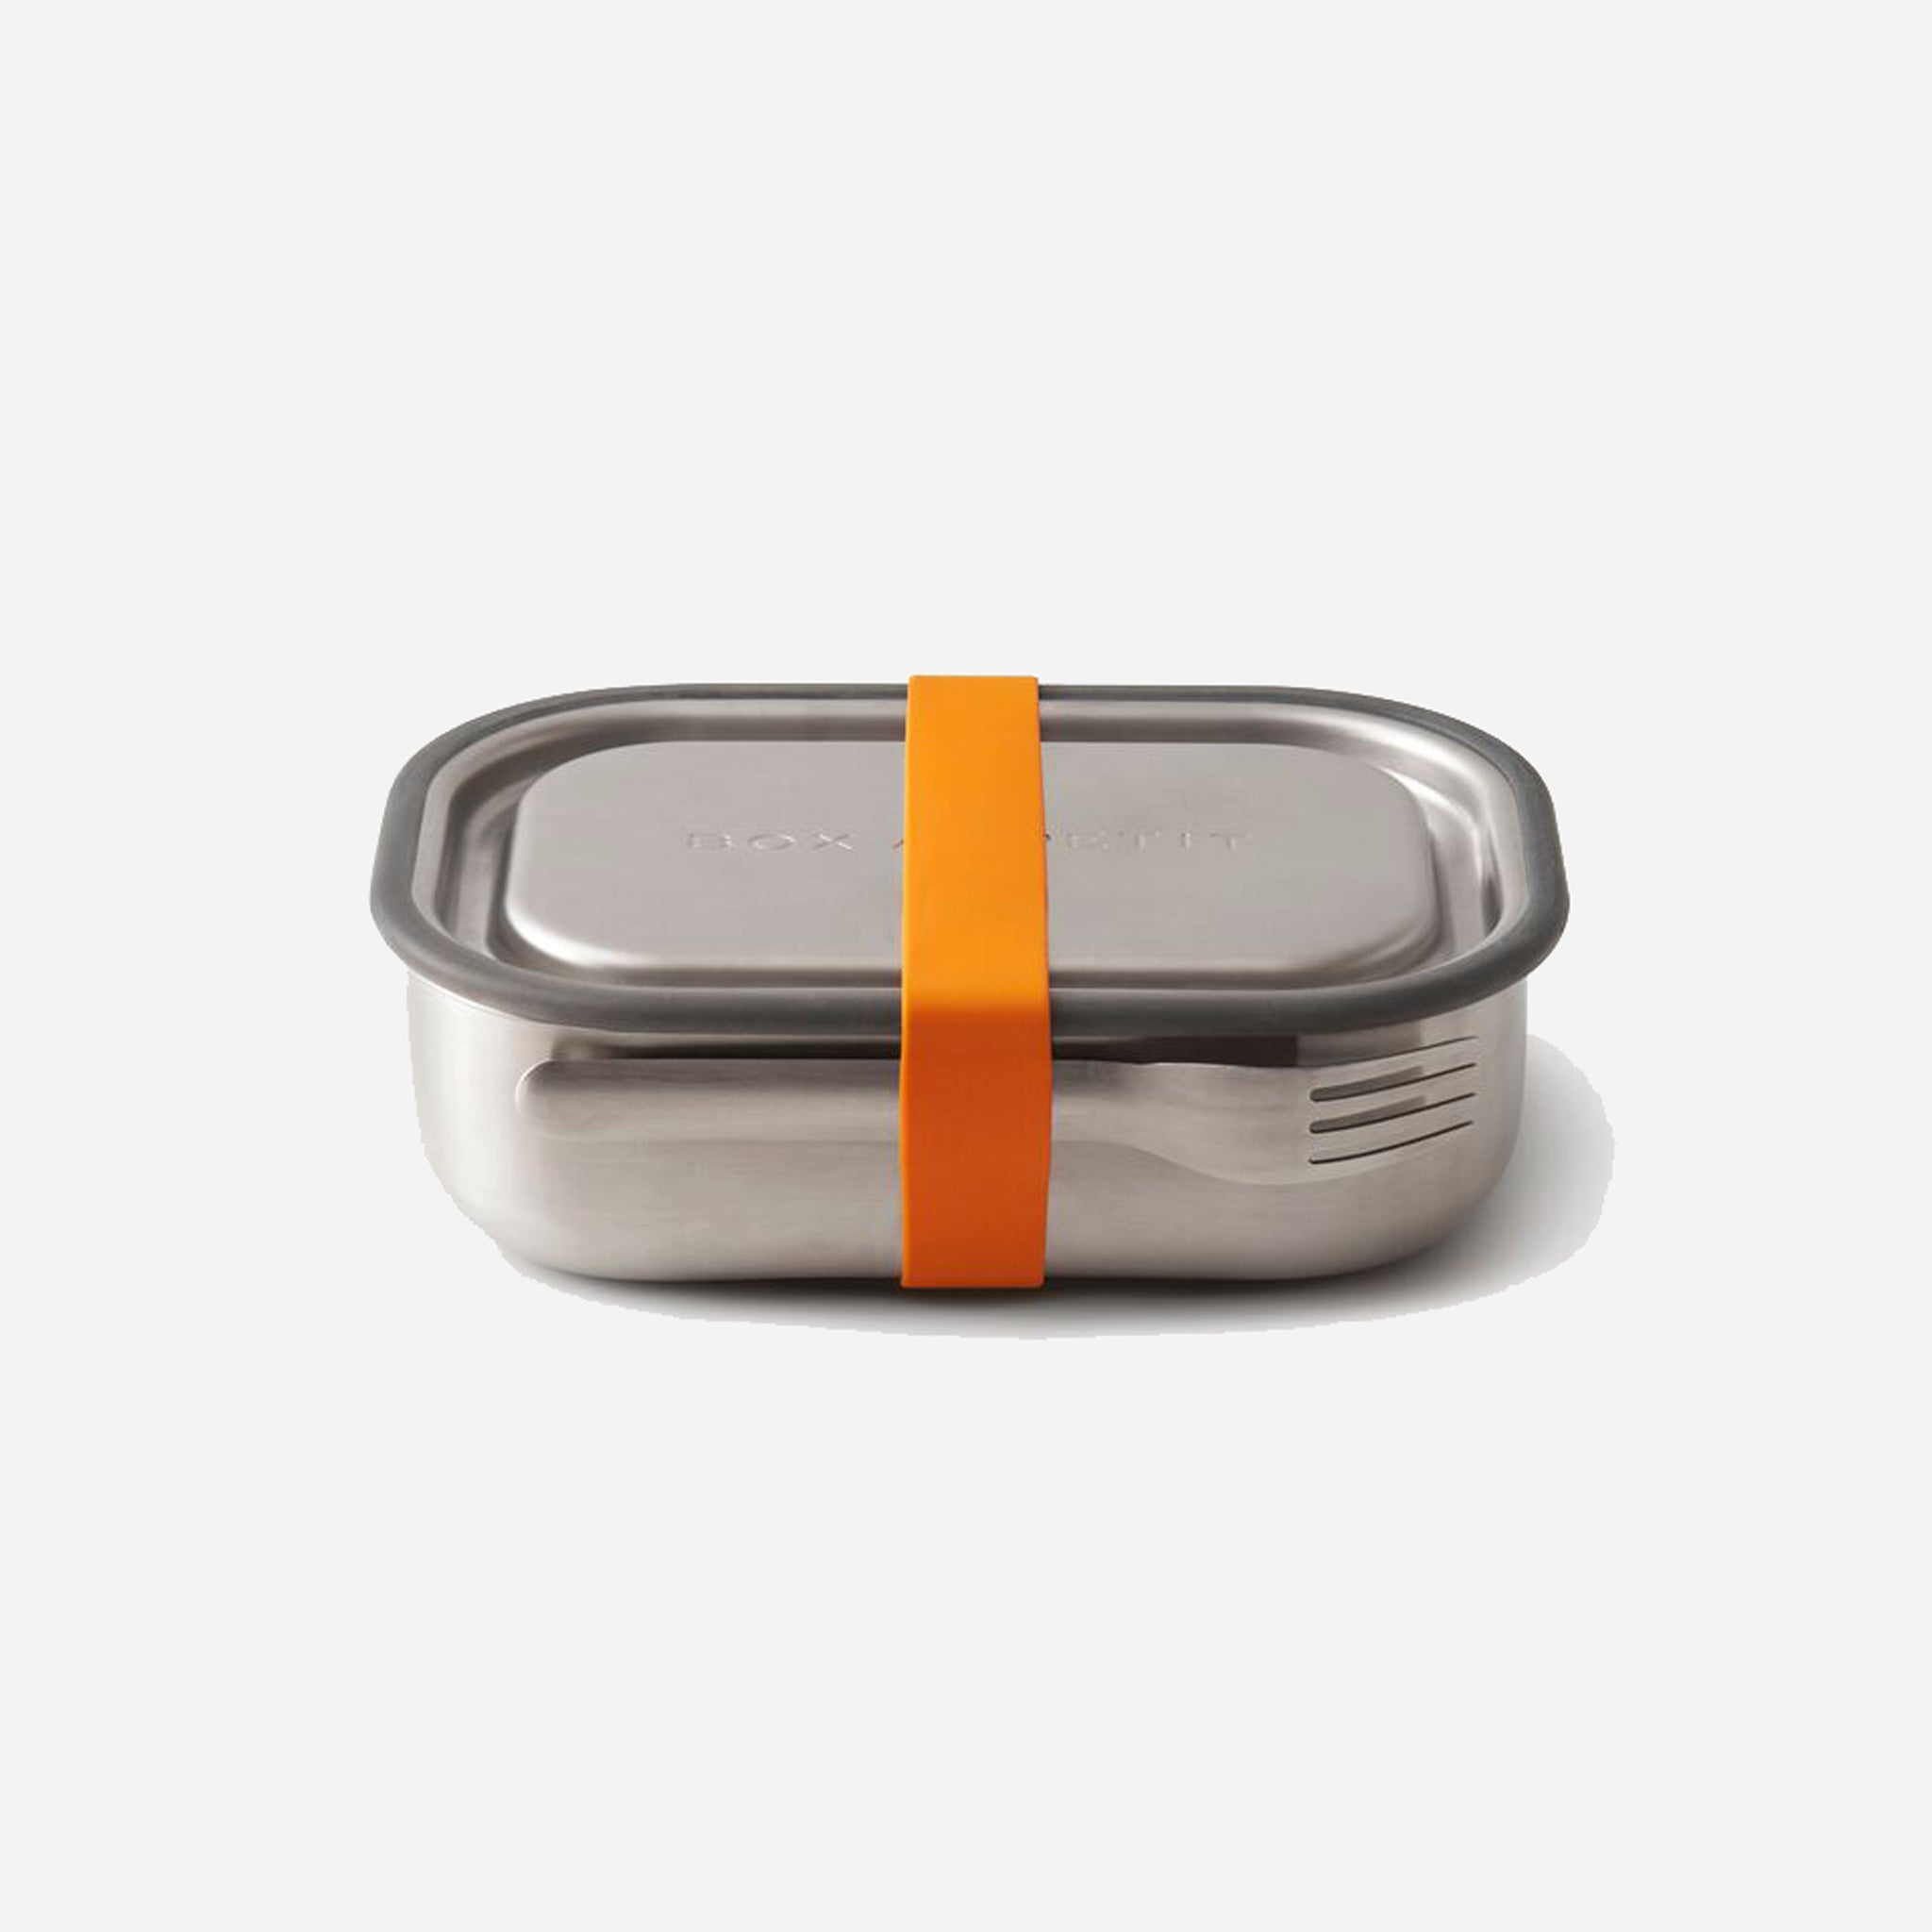 Black and Blum Stainless Steel Lunch Box - White Space Home